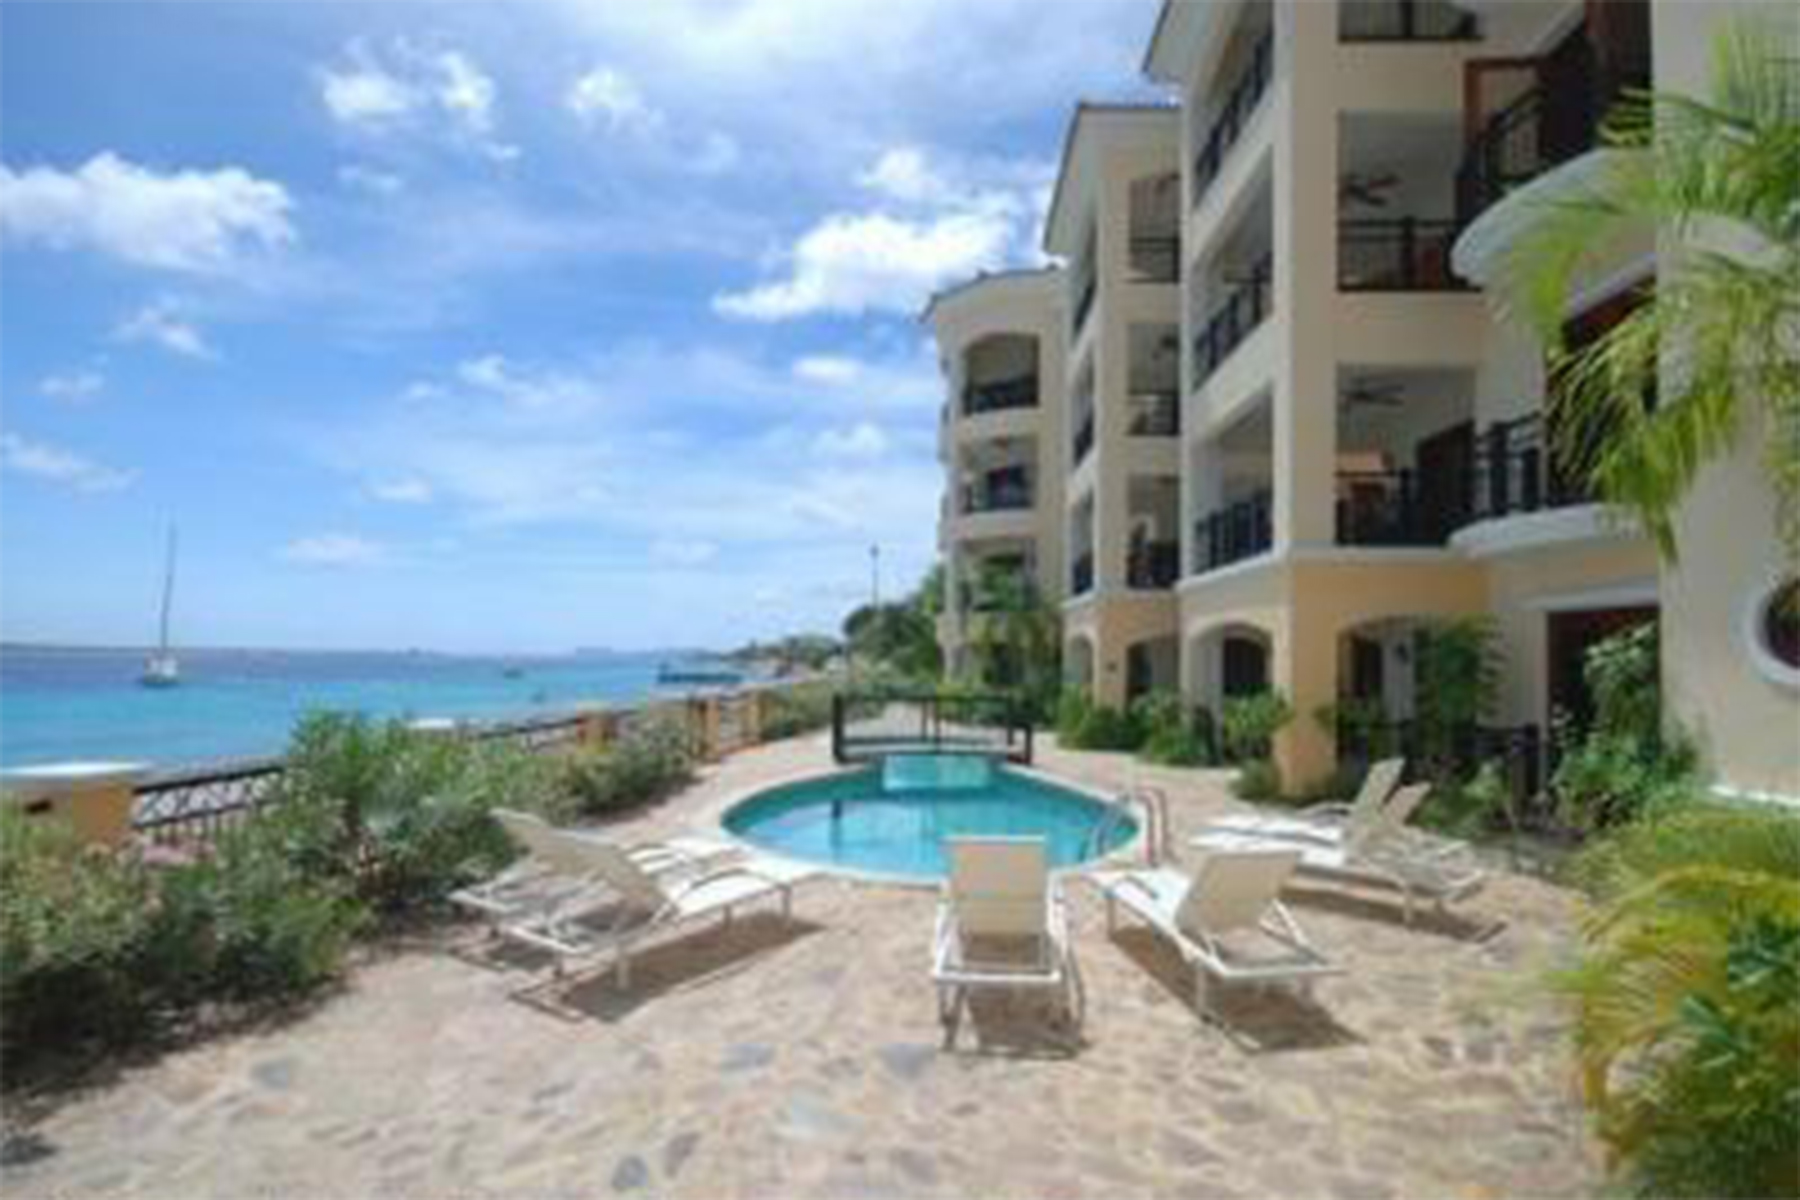 Apartment for Sale at Elegancia del Caribe unit 2 Kralendijk, Bonaire